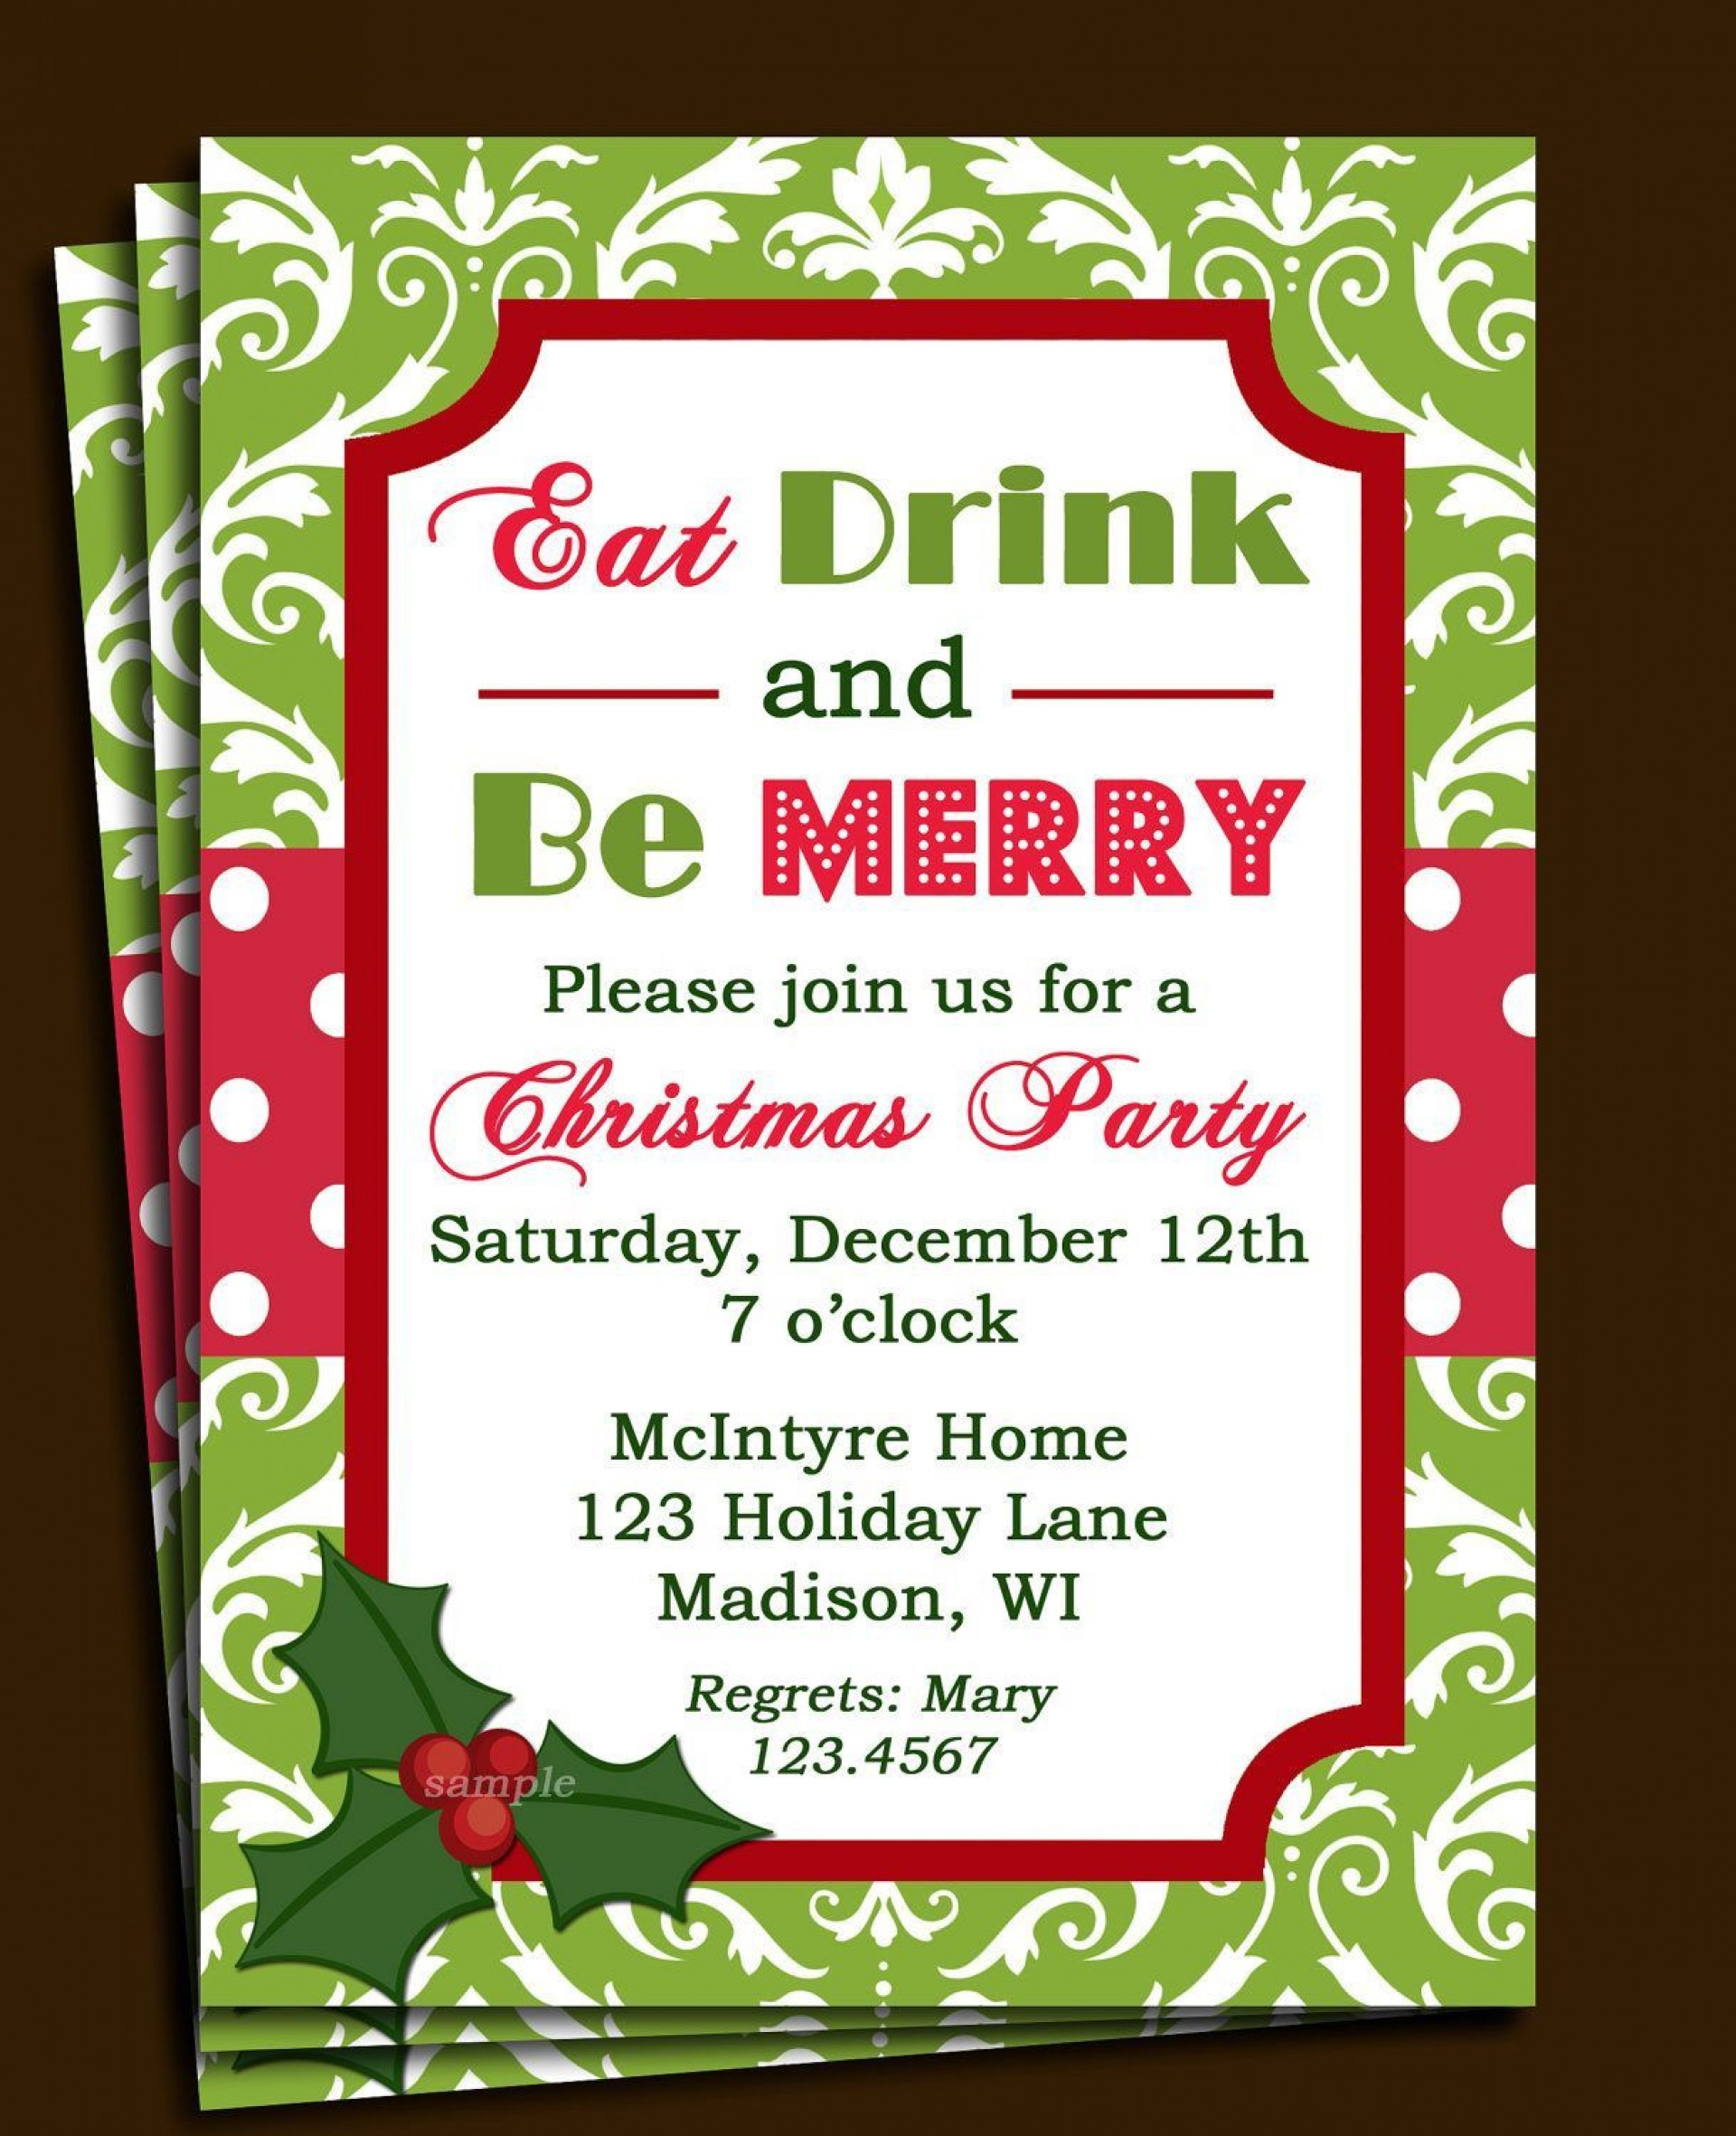 008 Excellent Free Busines Holiday Party Invitation Template Design  Templates Printable Office1920